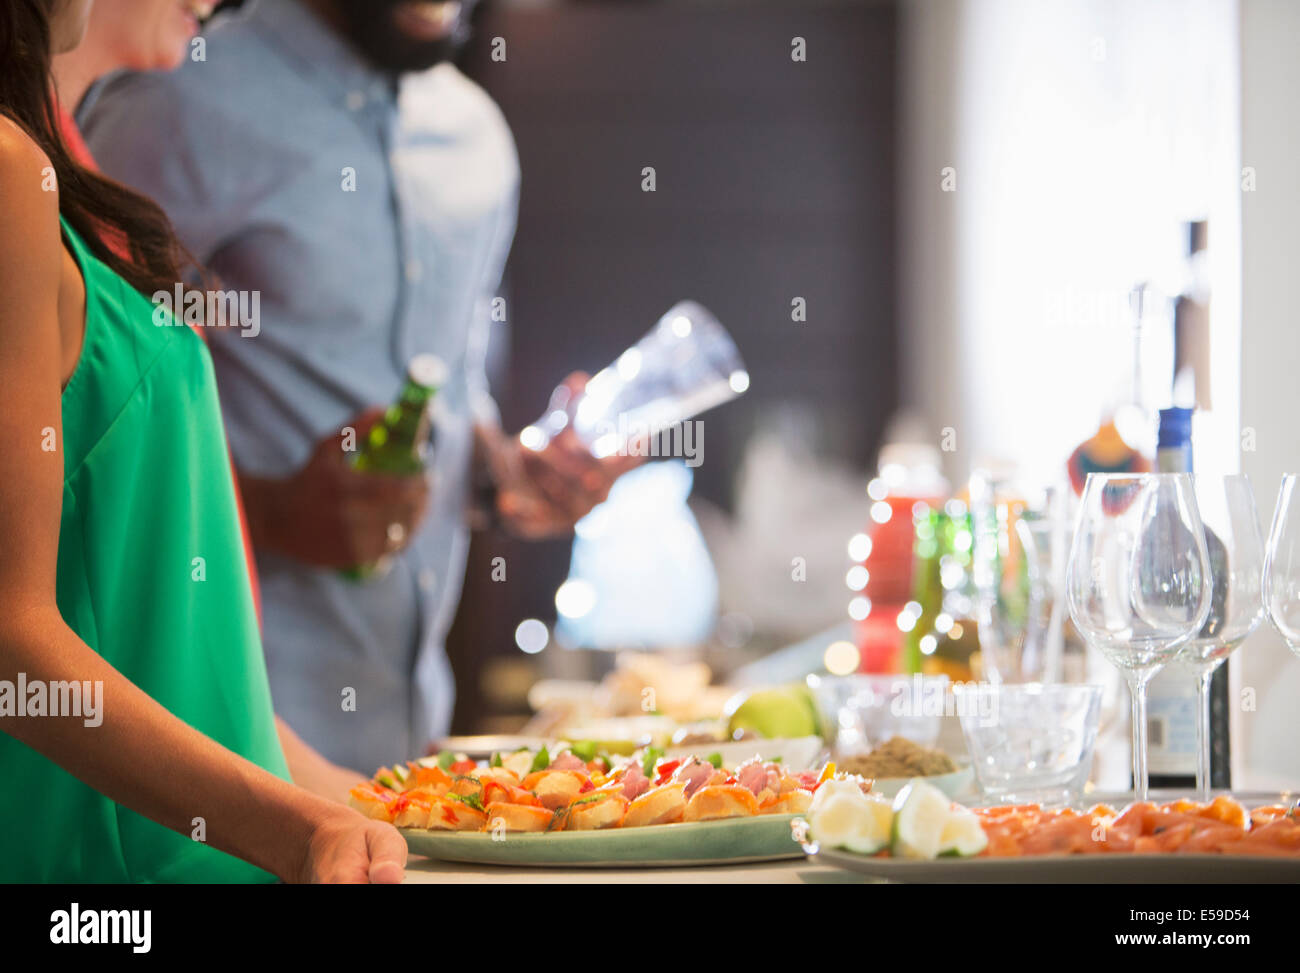 Woman with plates of food at party - Stock Image